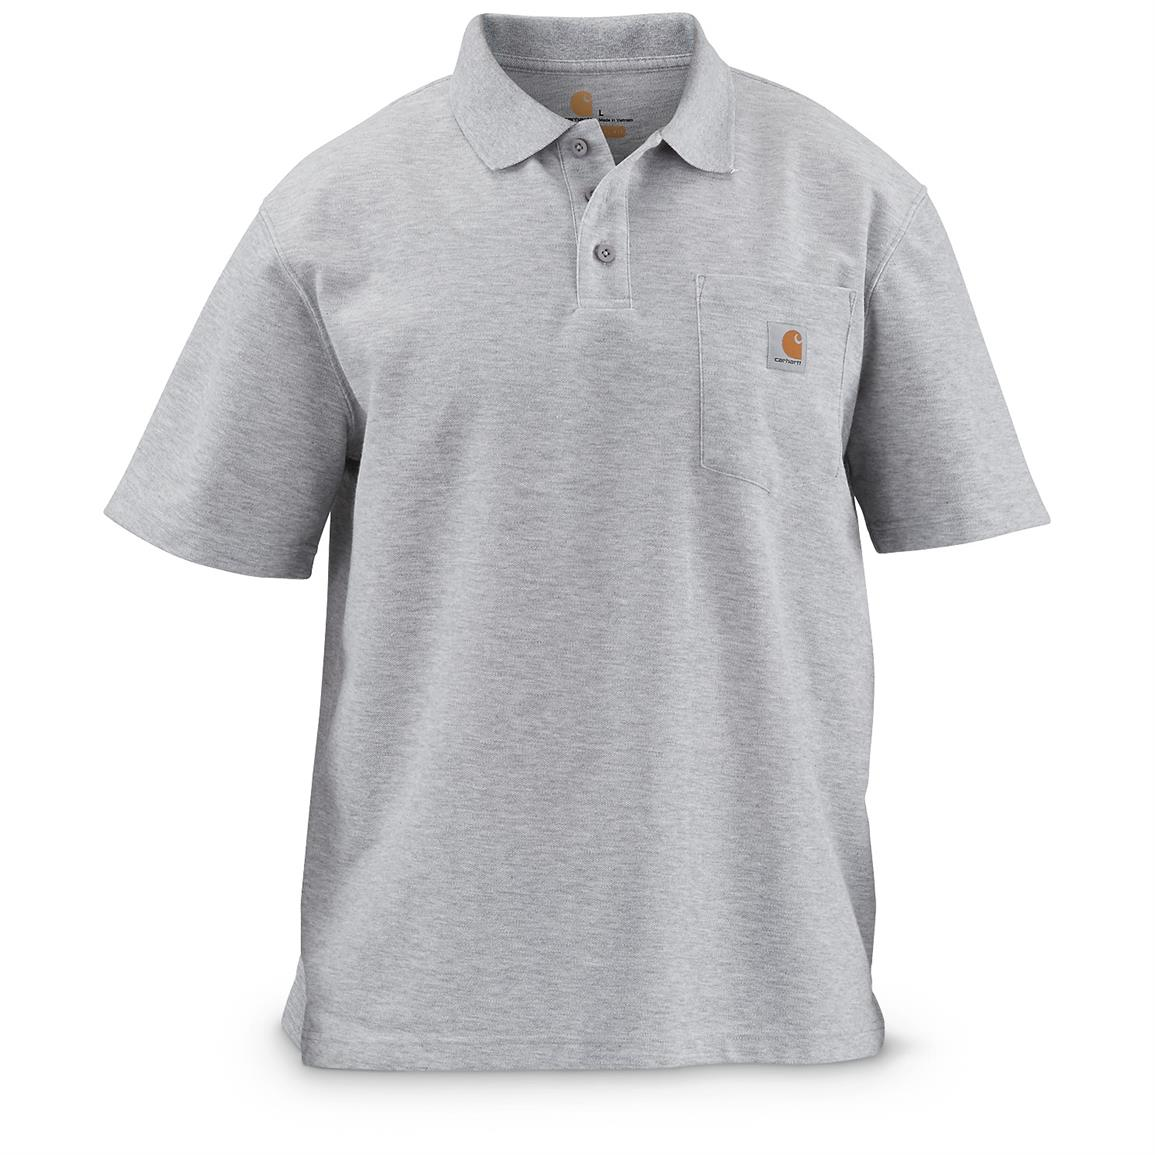 Carhartt Men's Contractor's Work Pocket Polo, Heather Gray